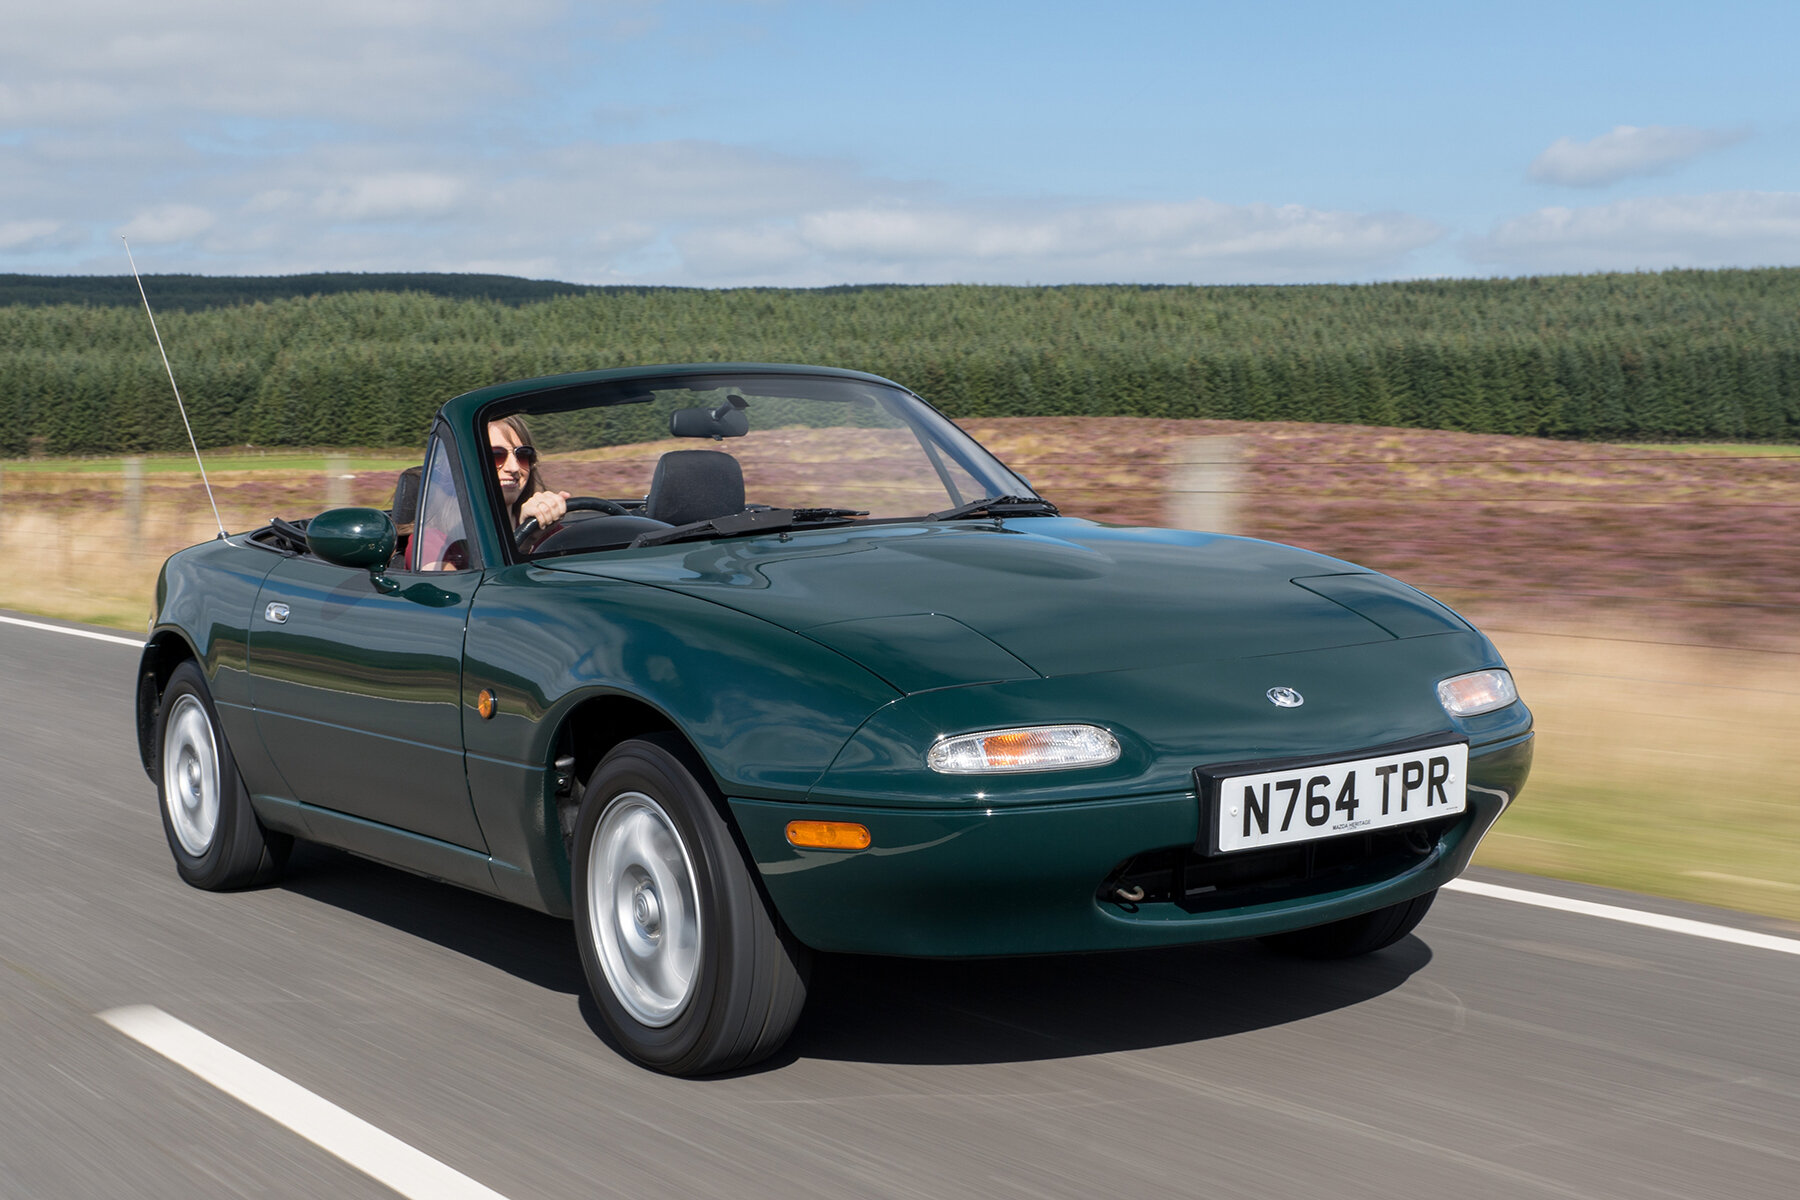 Roof down, open roads, living the Mazda MX-5 dream